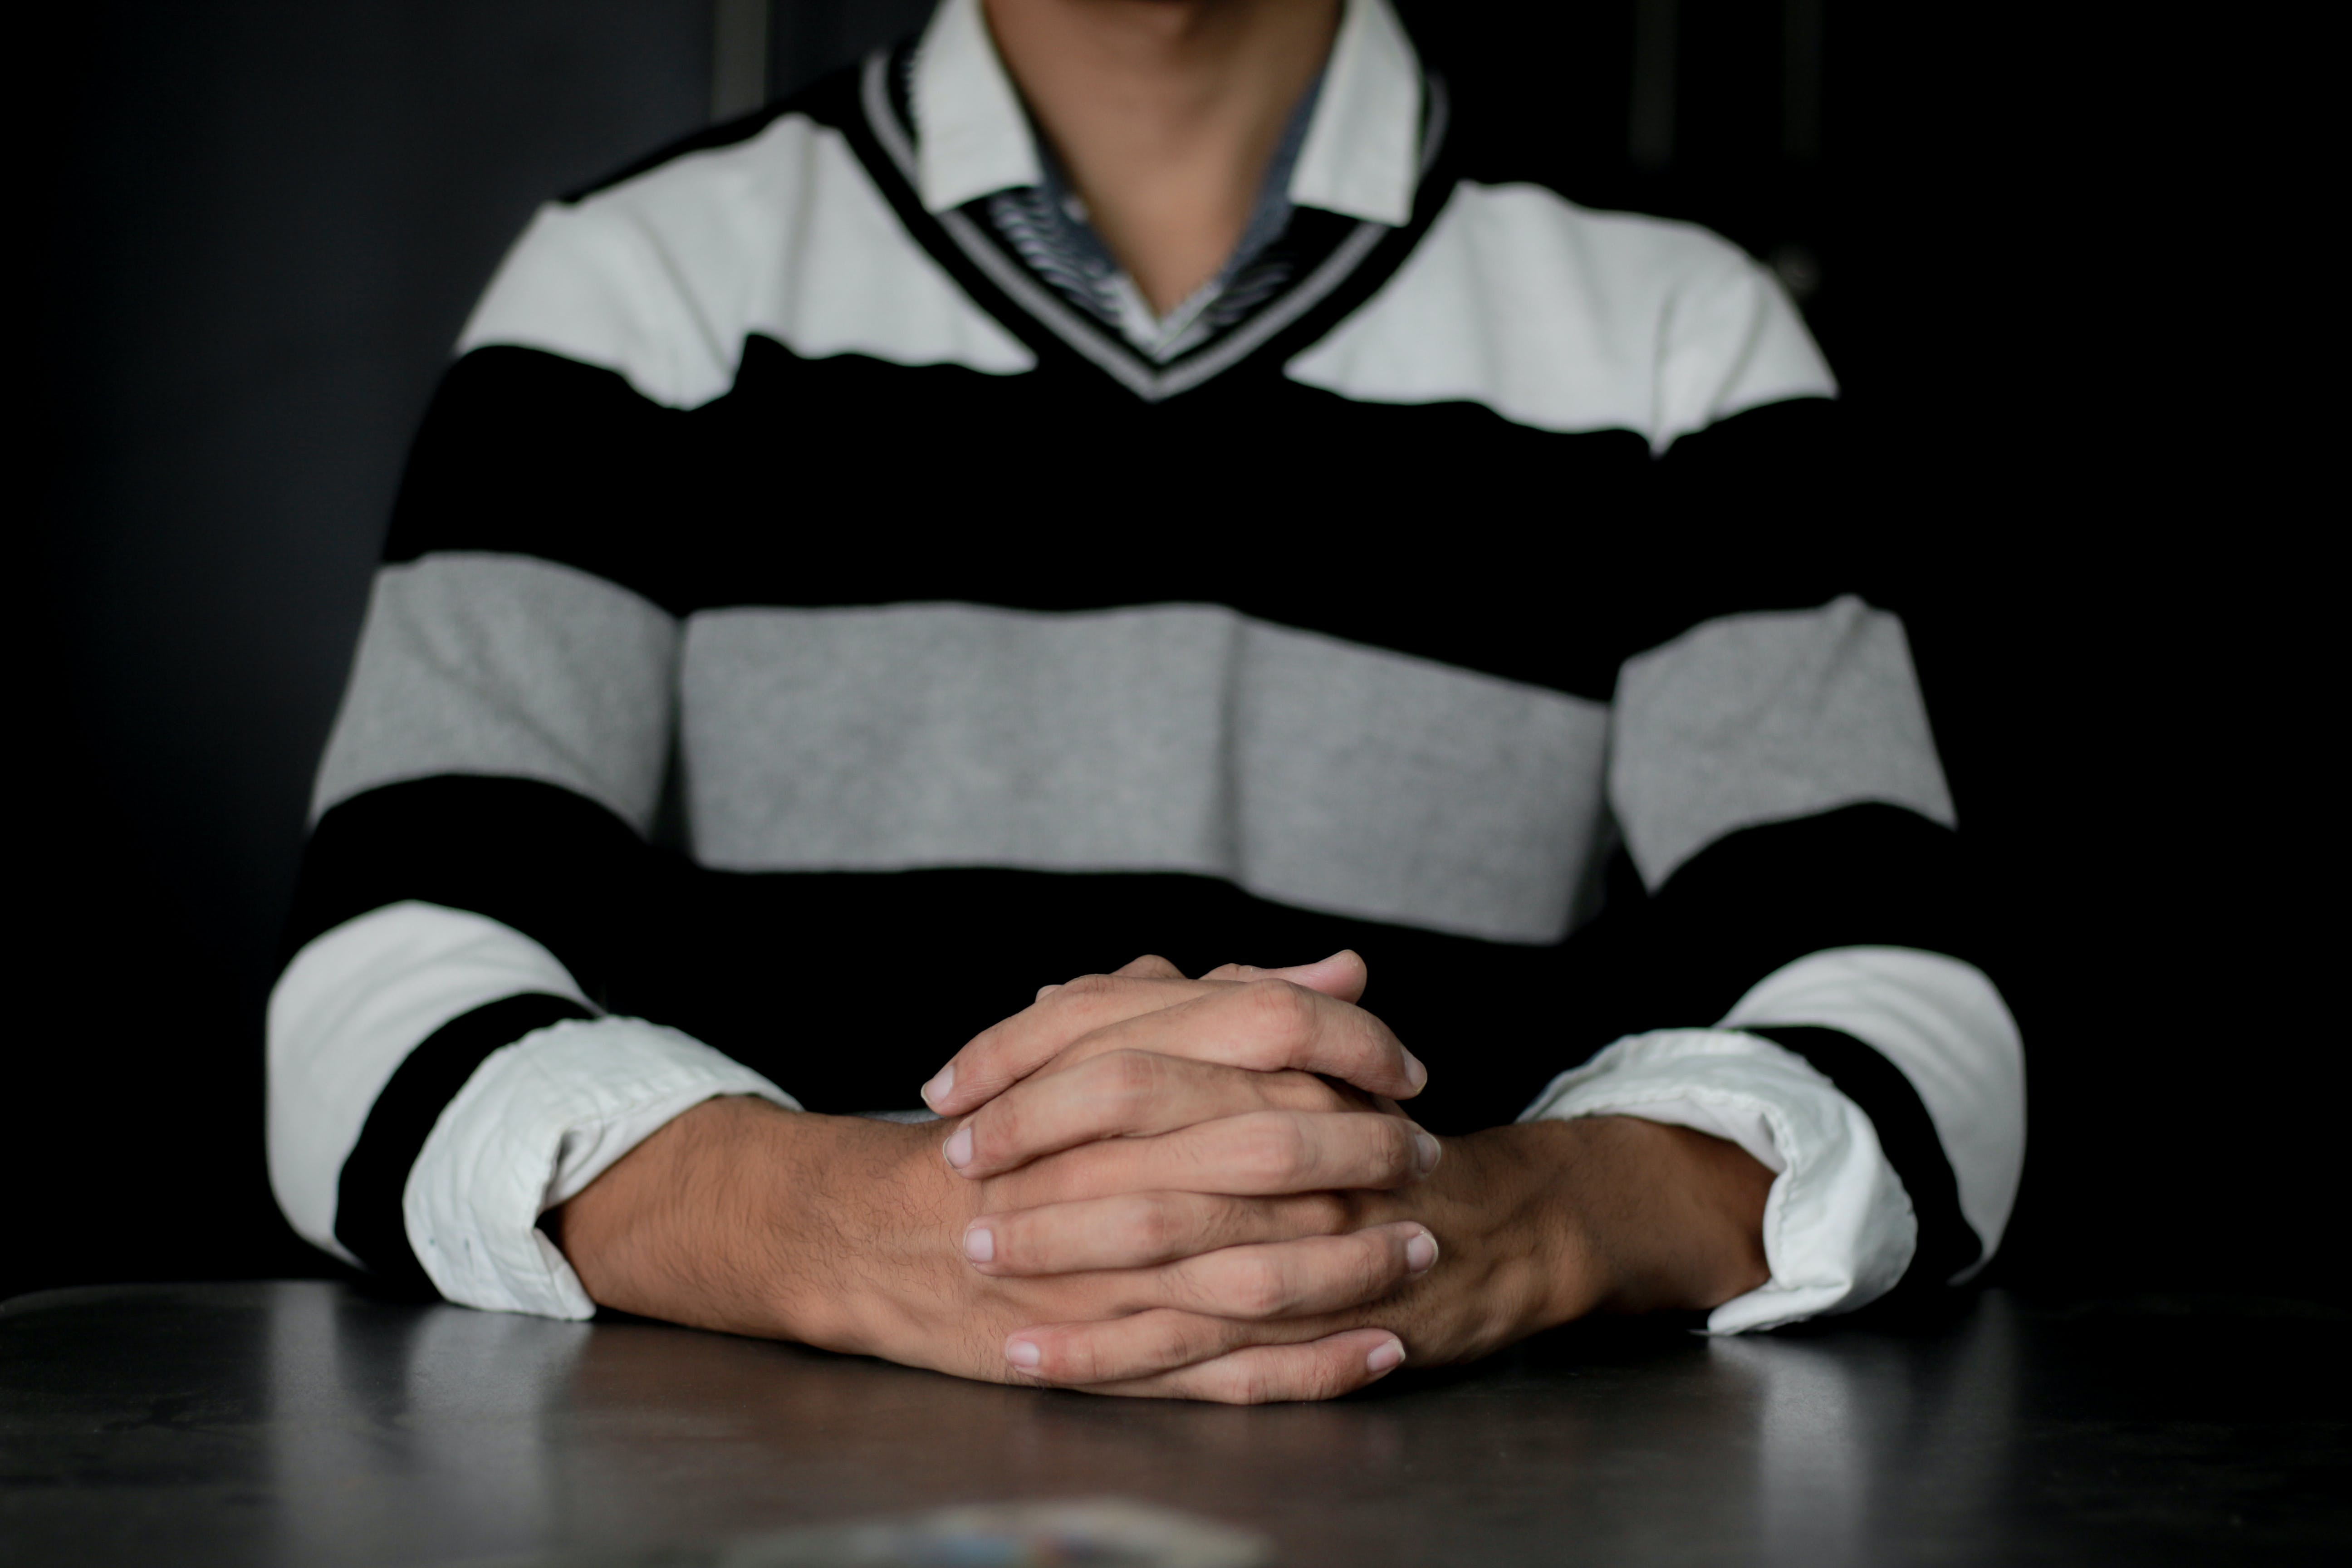 Person Wearing White and Black Striped Sweater Sitting